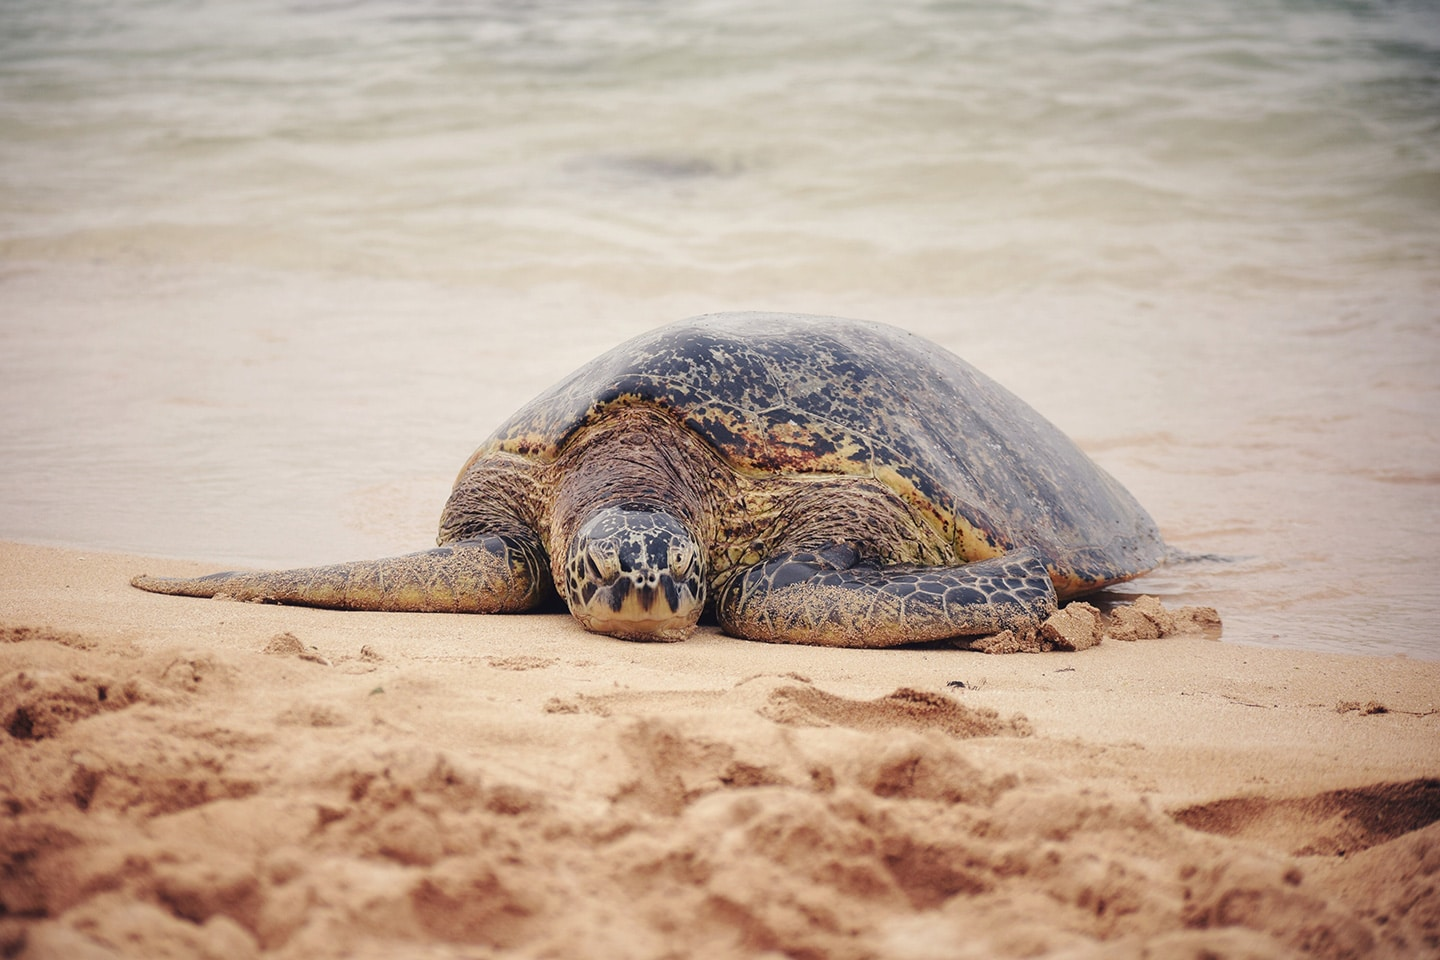 Turtle on the shore in Hawaii